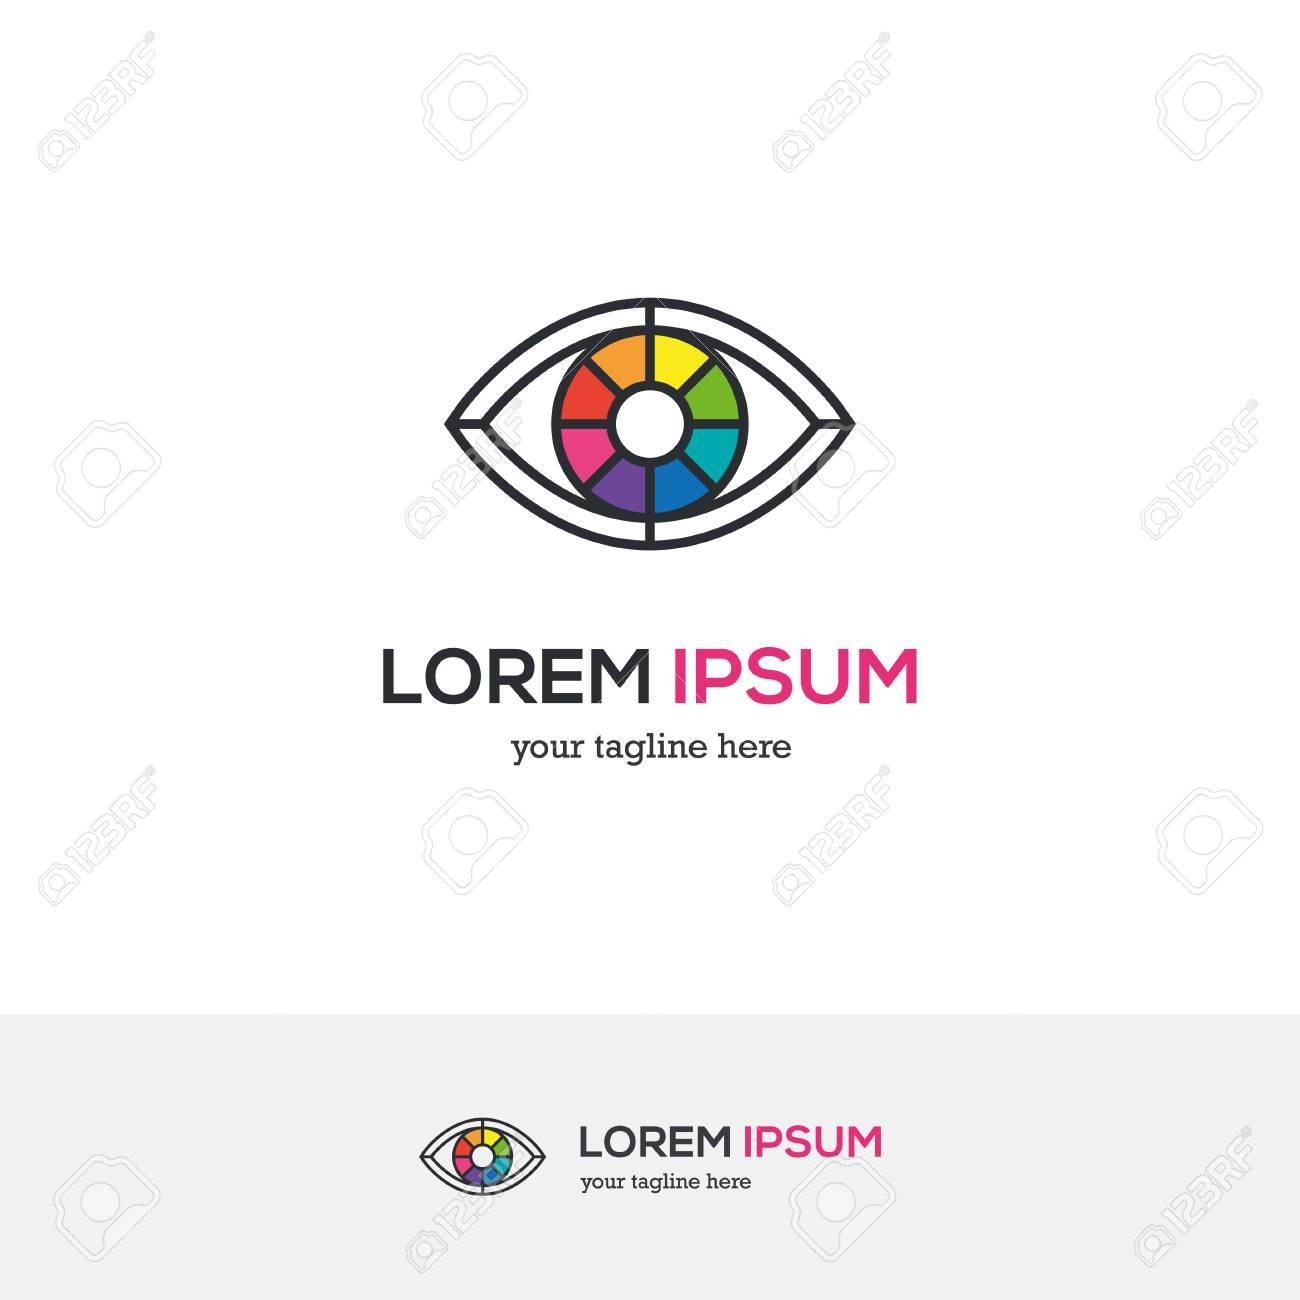 Colorful Eye Logo Looking Like A Color Wheel Royalty Free Cliparts